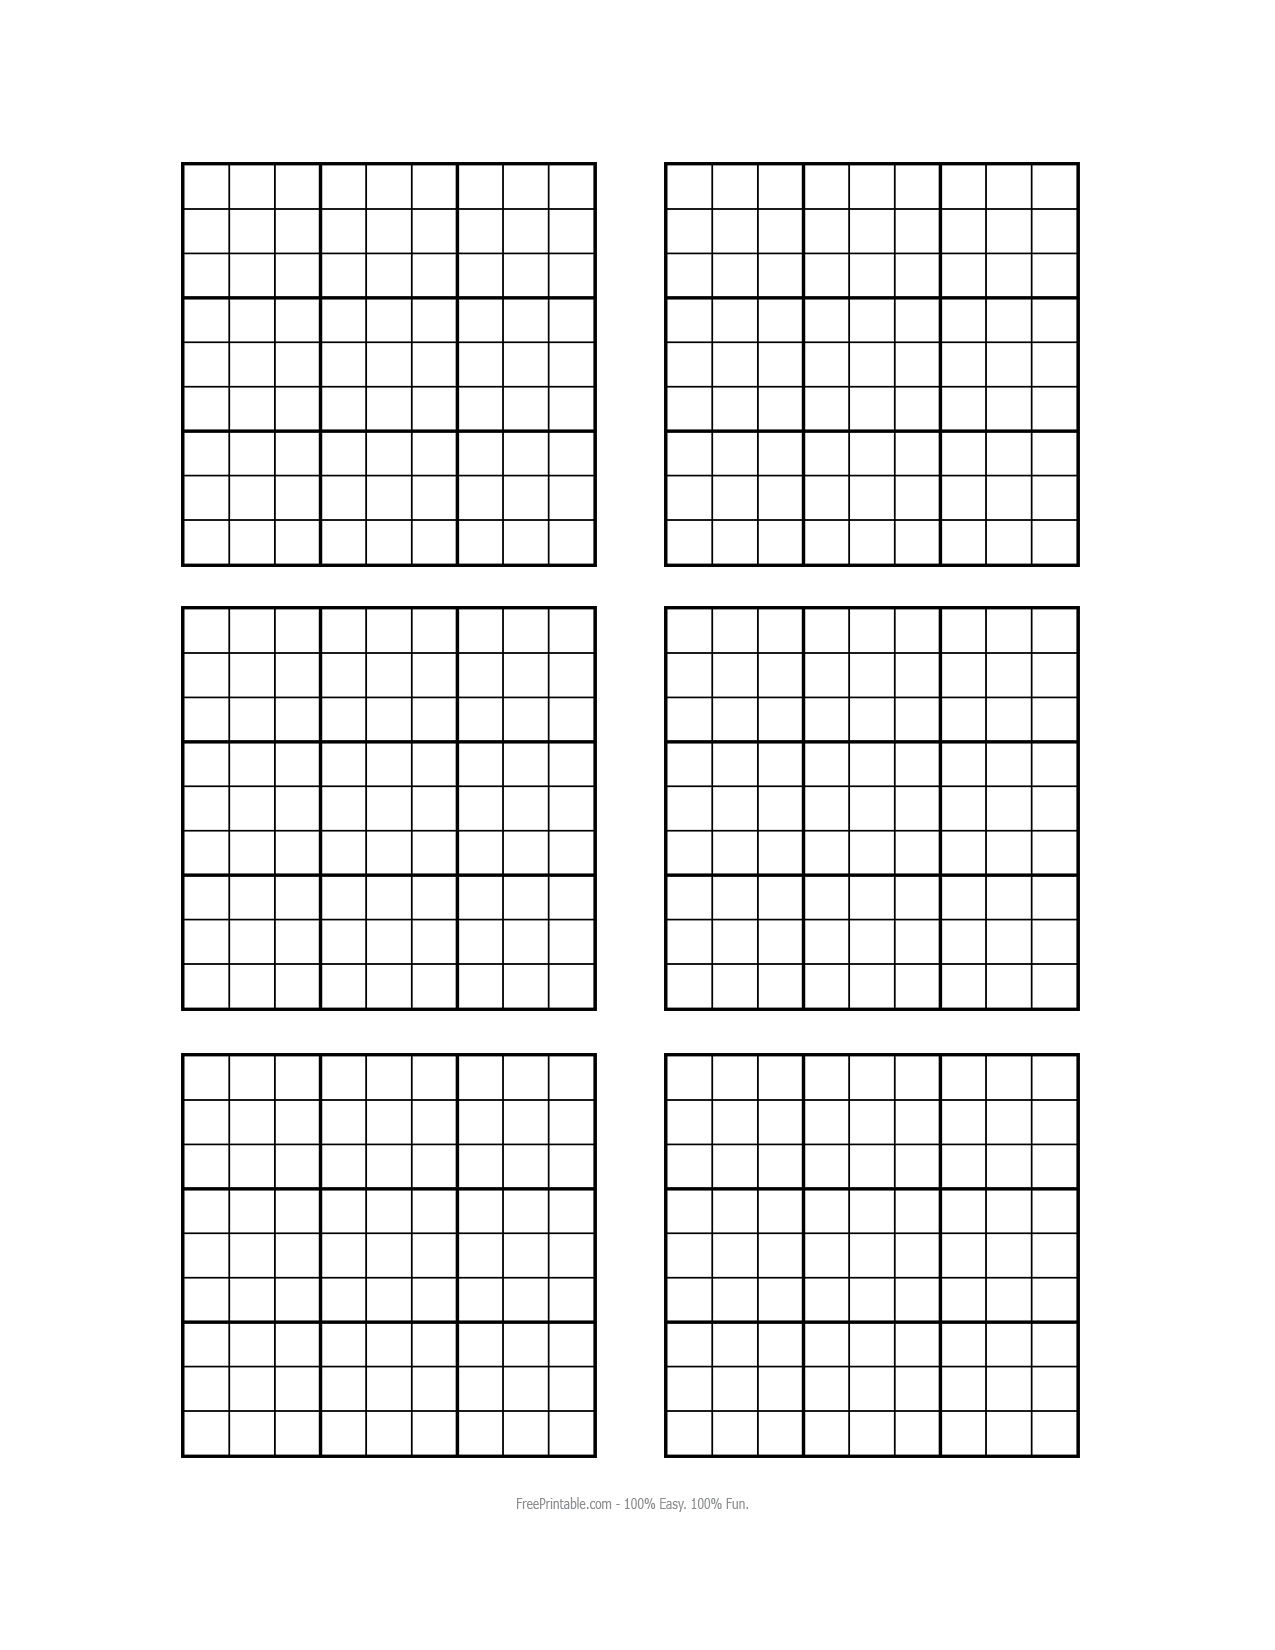 Sudoku Grid Template - Falep.midnightpig.co